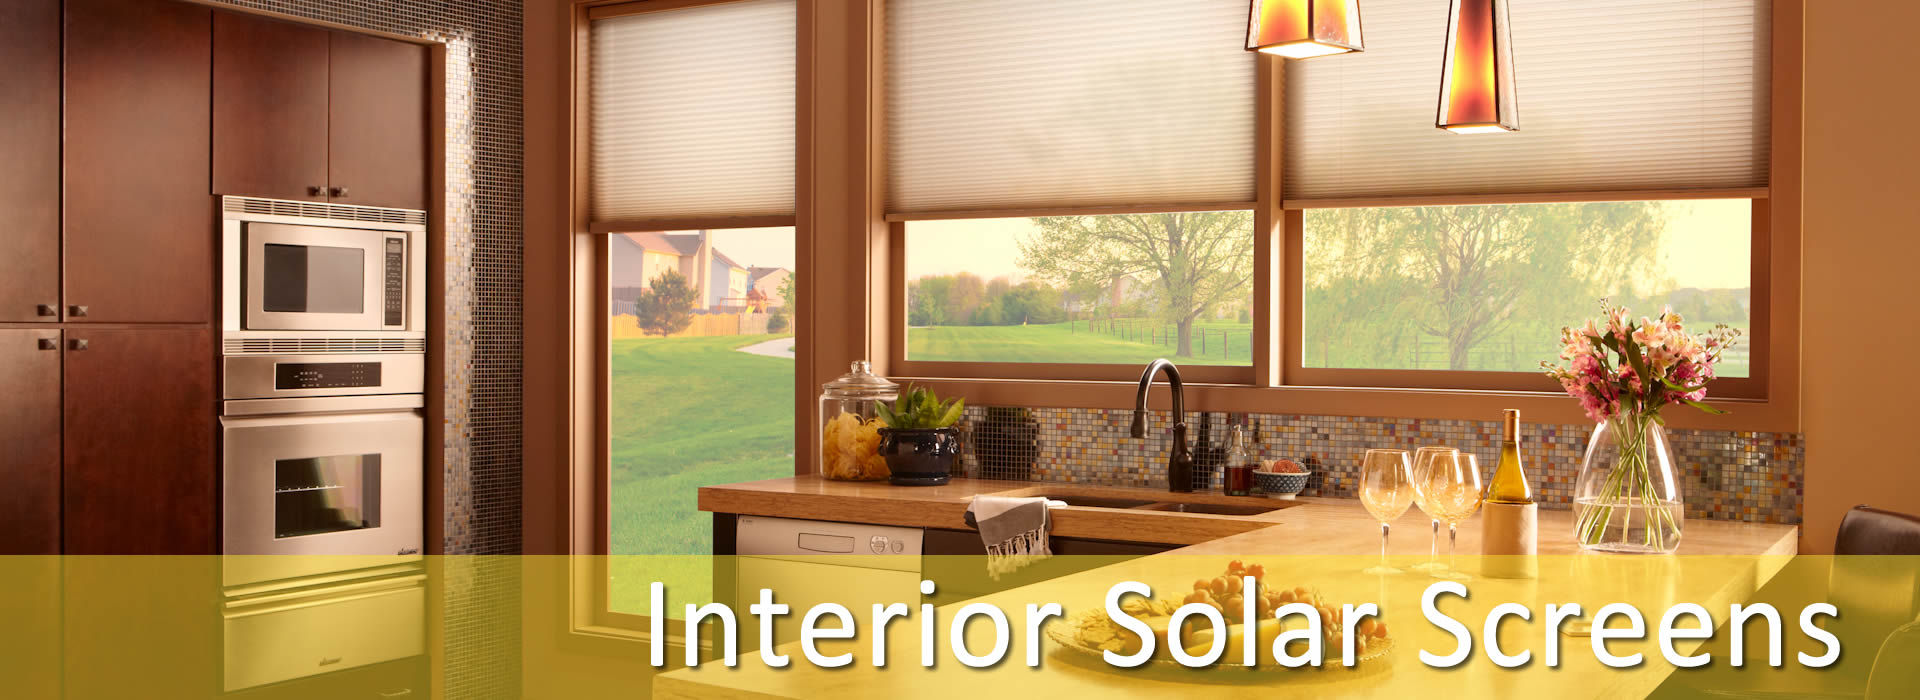 Interior Retractable Solar Screens Dallas Interior Solar Roll Up Screens Fort Worth Interior